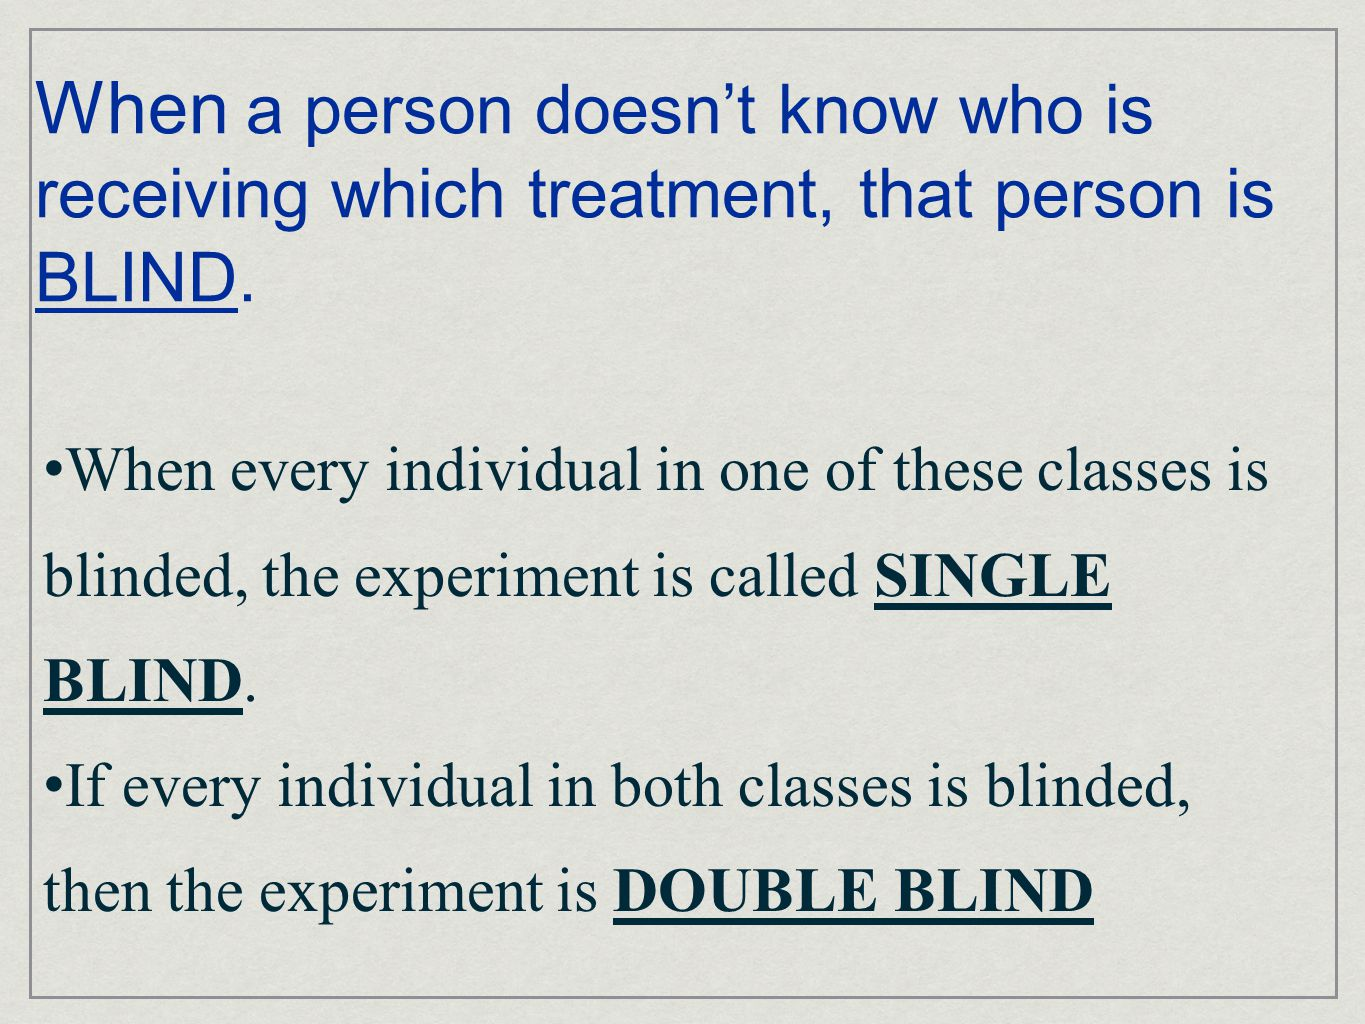 When a person doesn't know who is receiving which treatment, that person is BLIND.